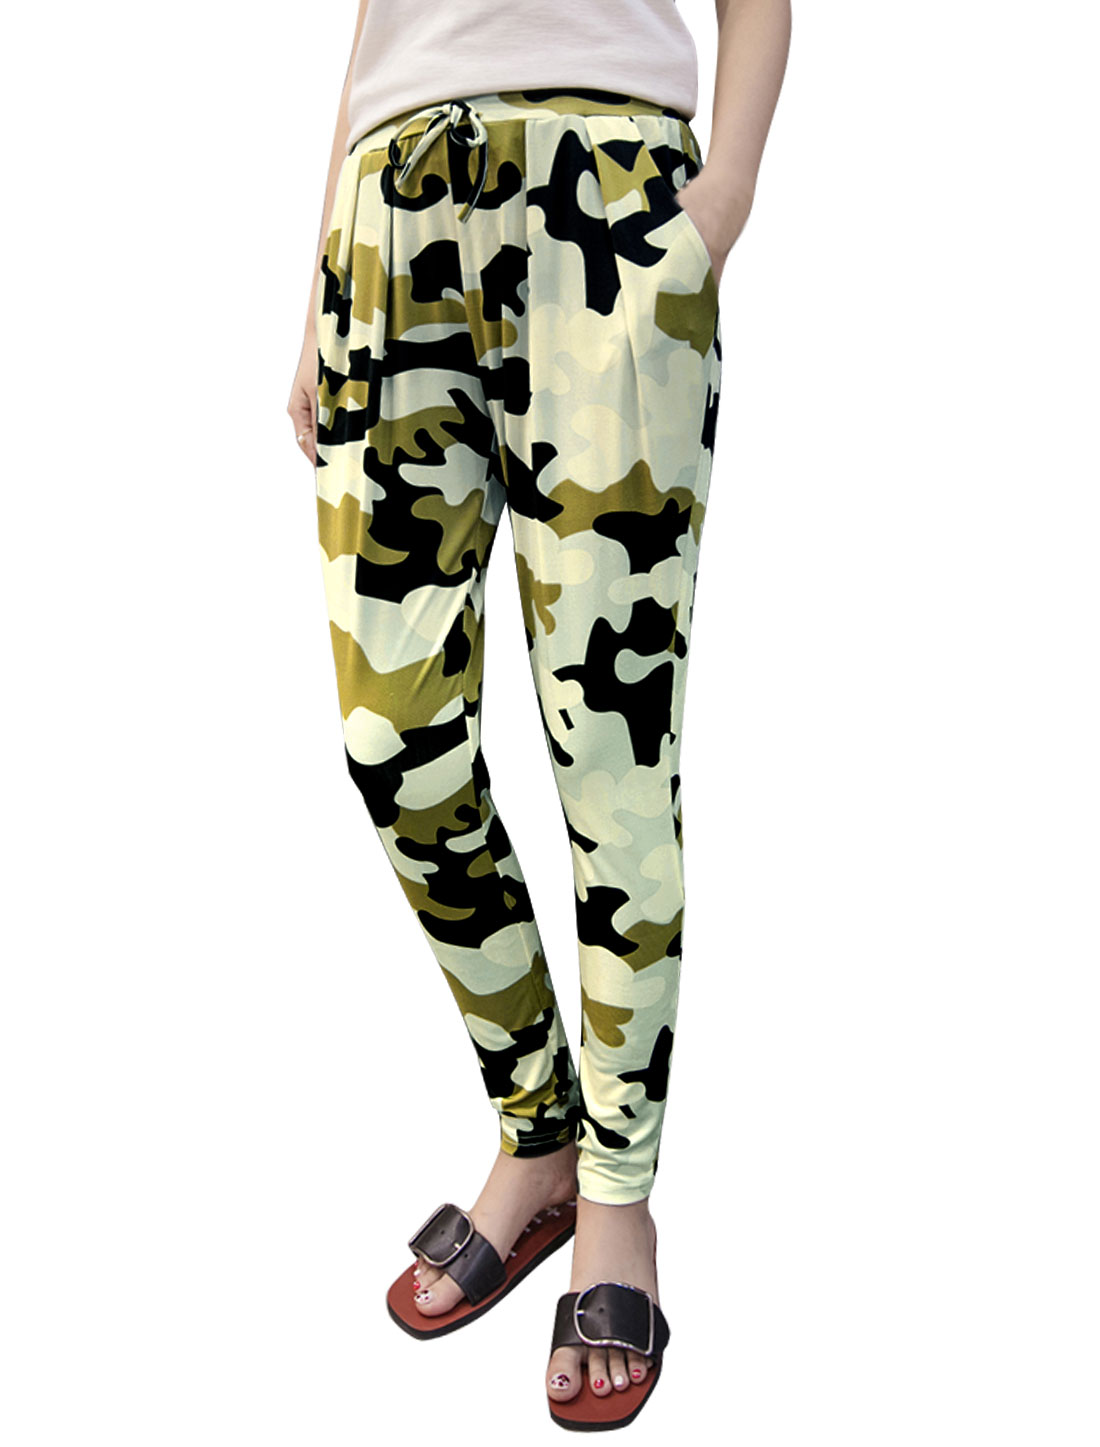 Women Drawstring Elastic Waist Tapered Camouflage Print Pants Beige S